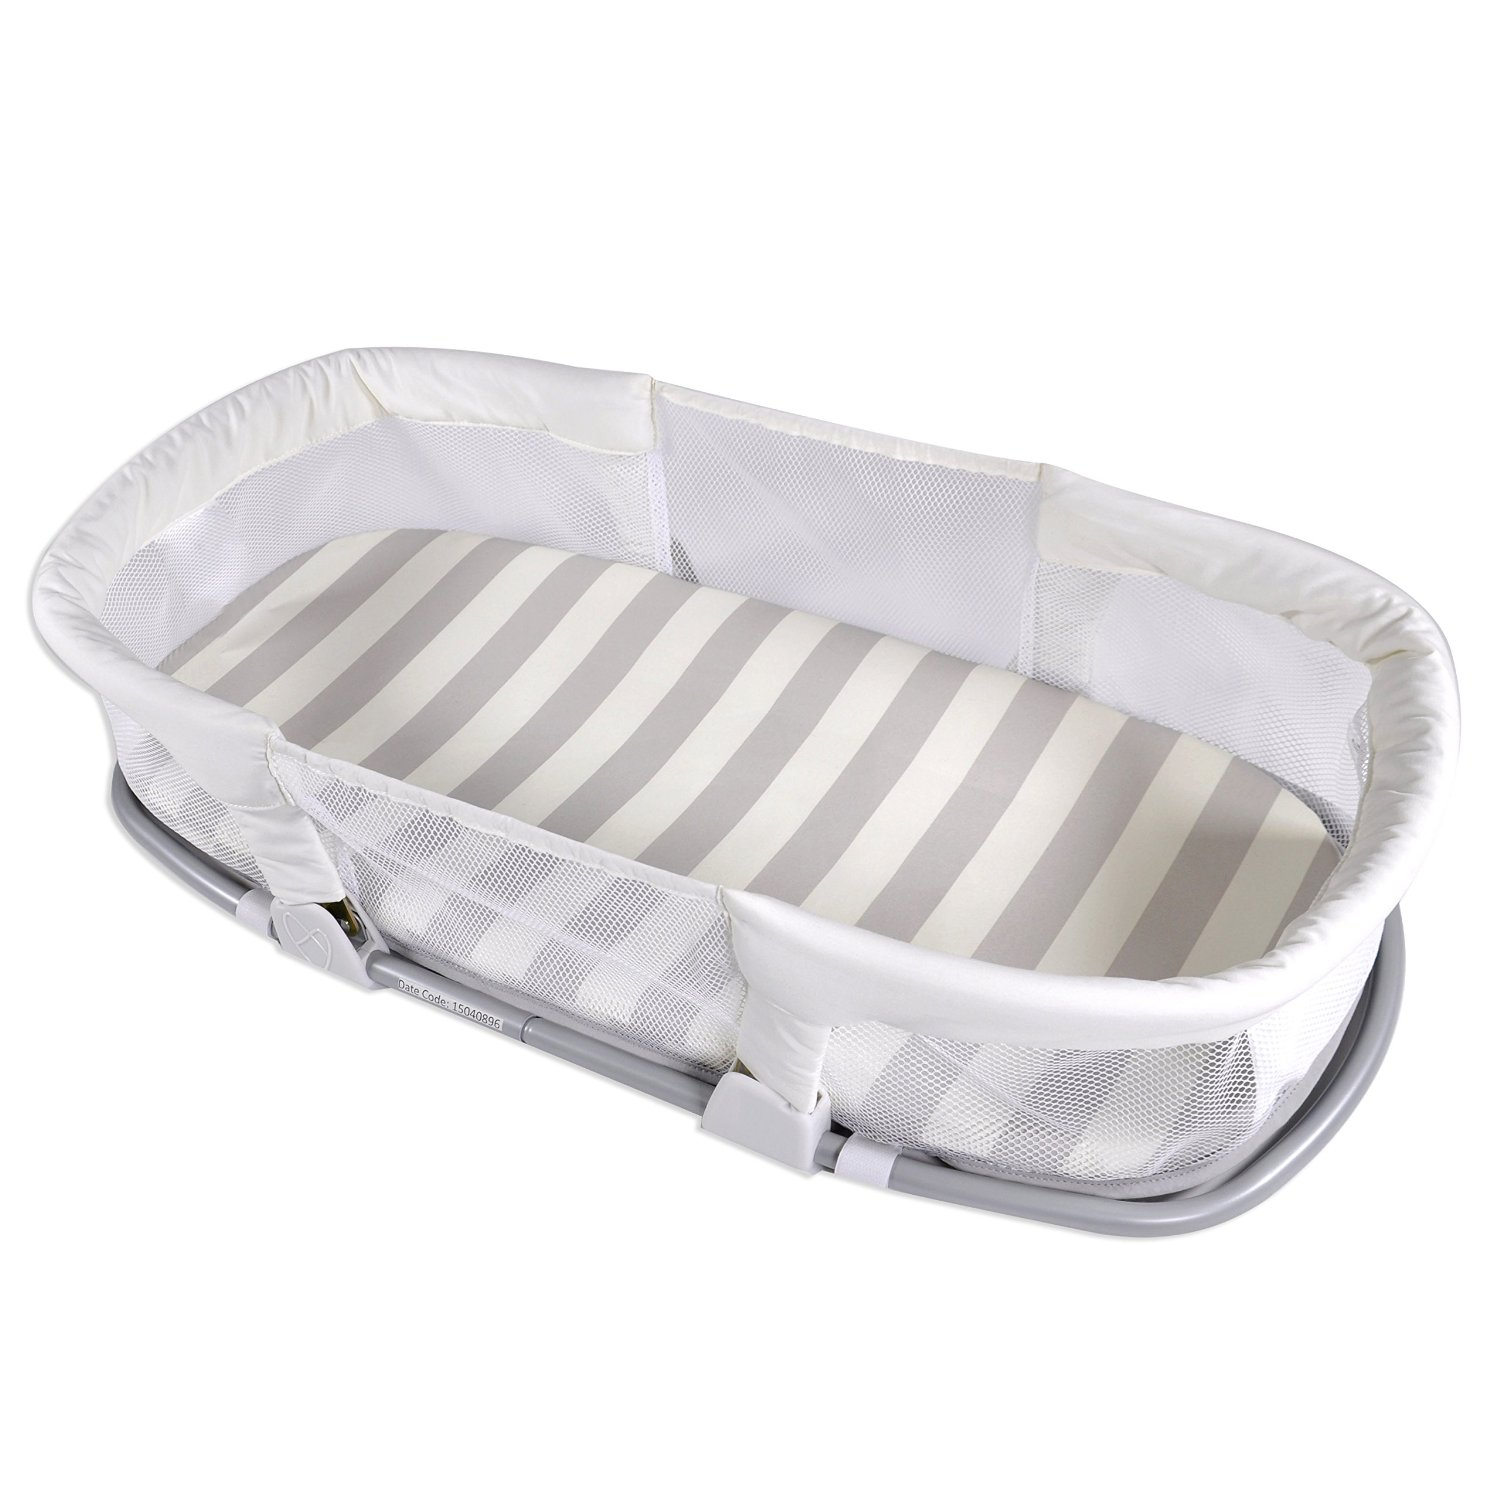 Portable Baby Bed For Plane